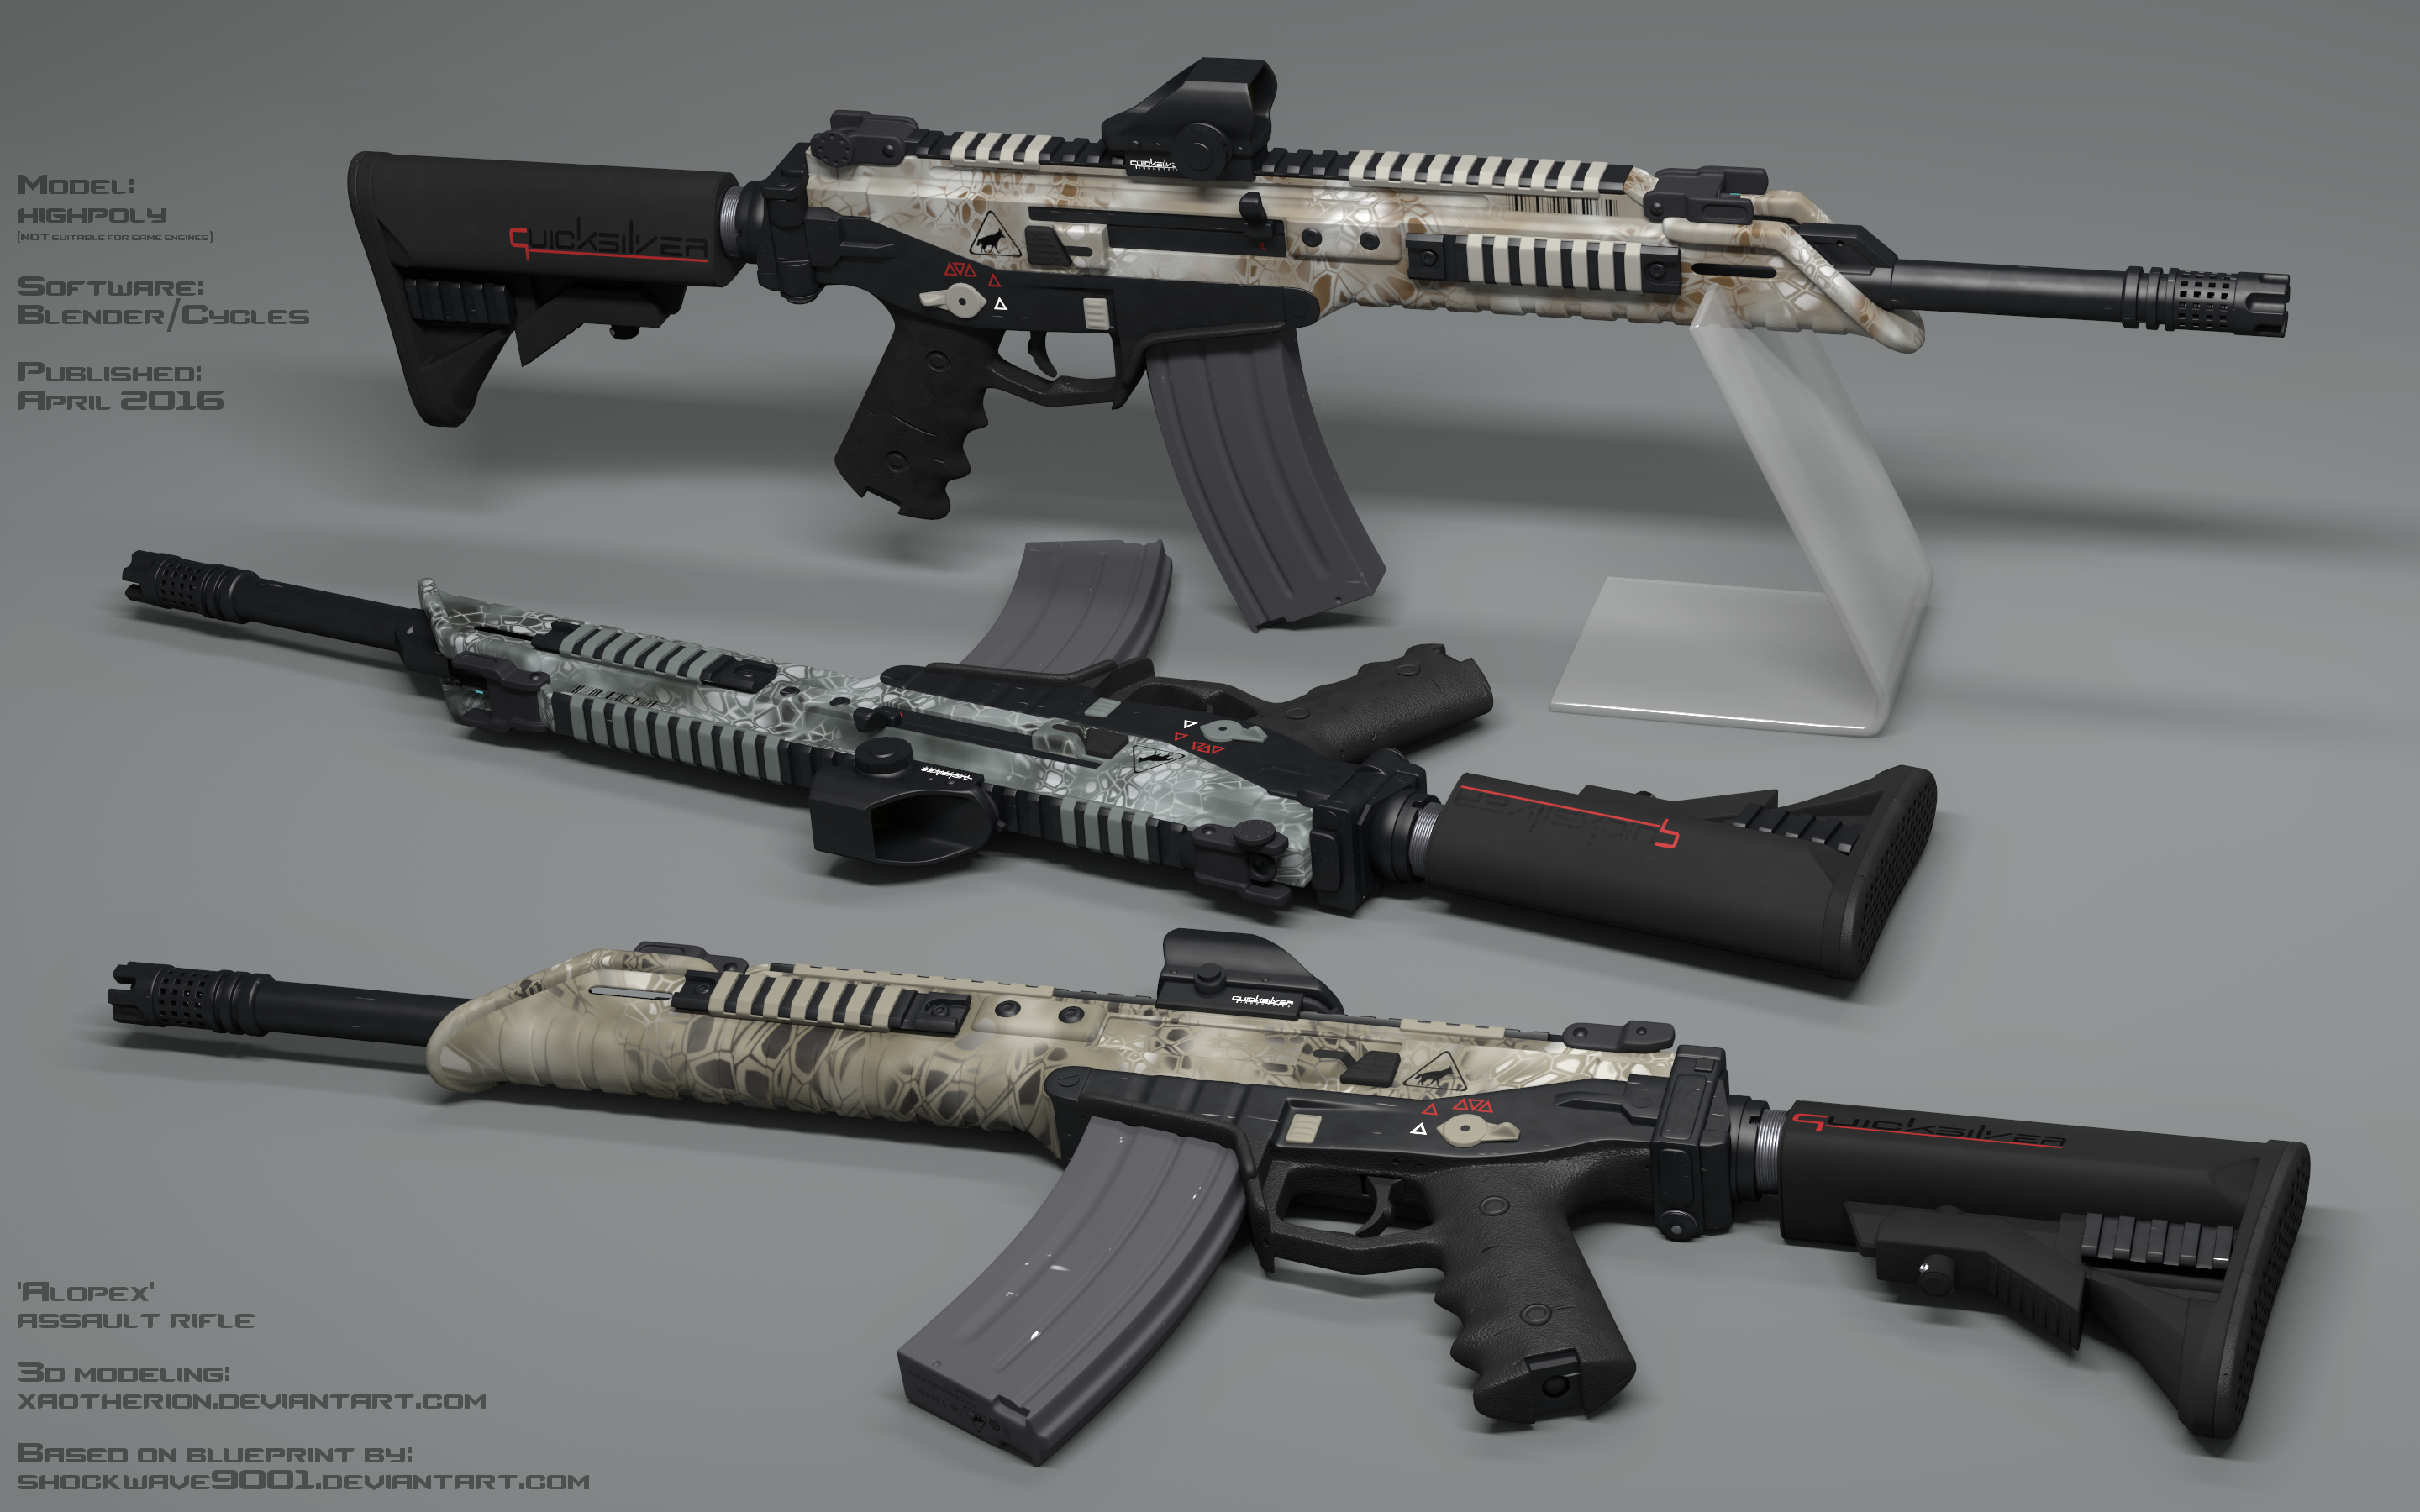 Alopex Assault Rifle By Xaotherion On DeviantArt